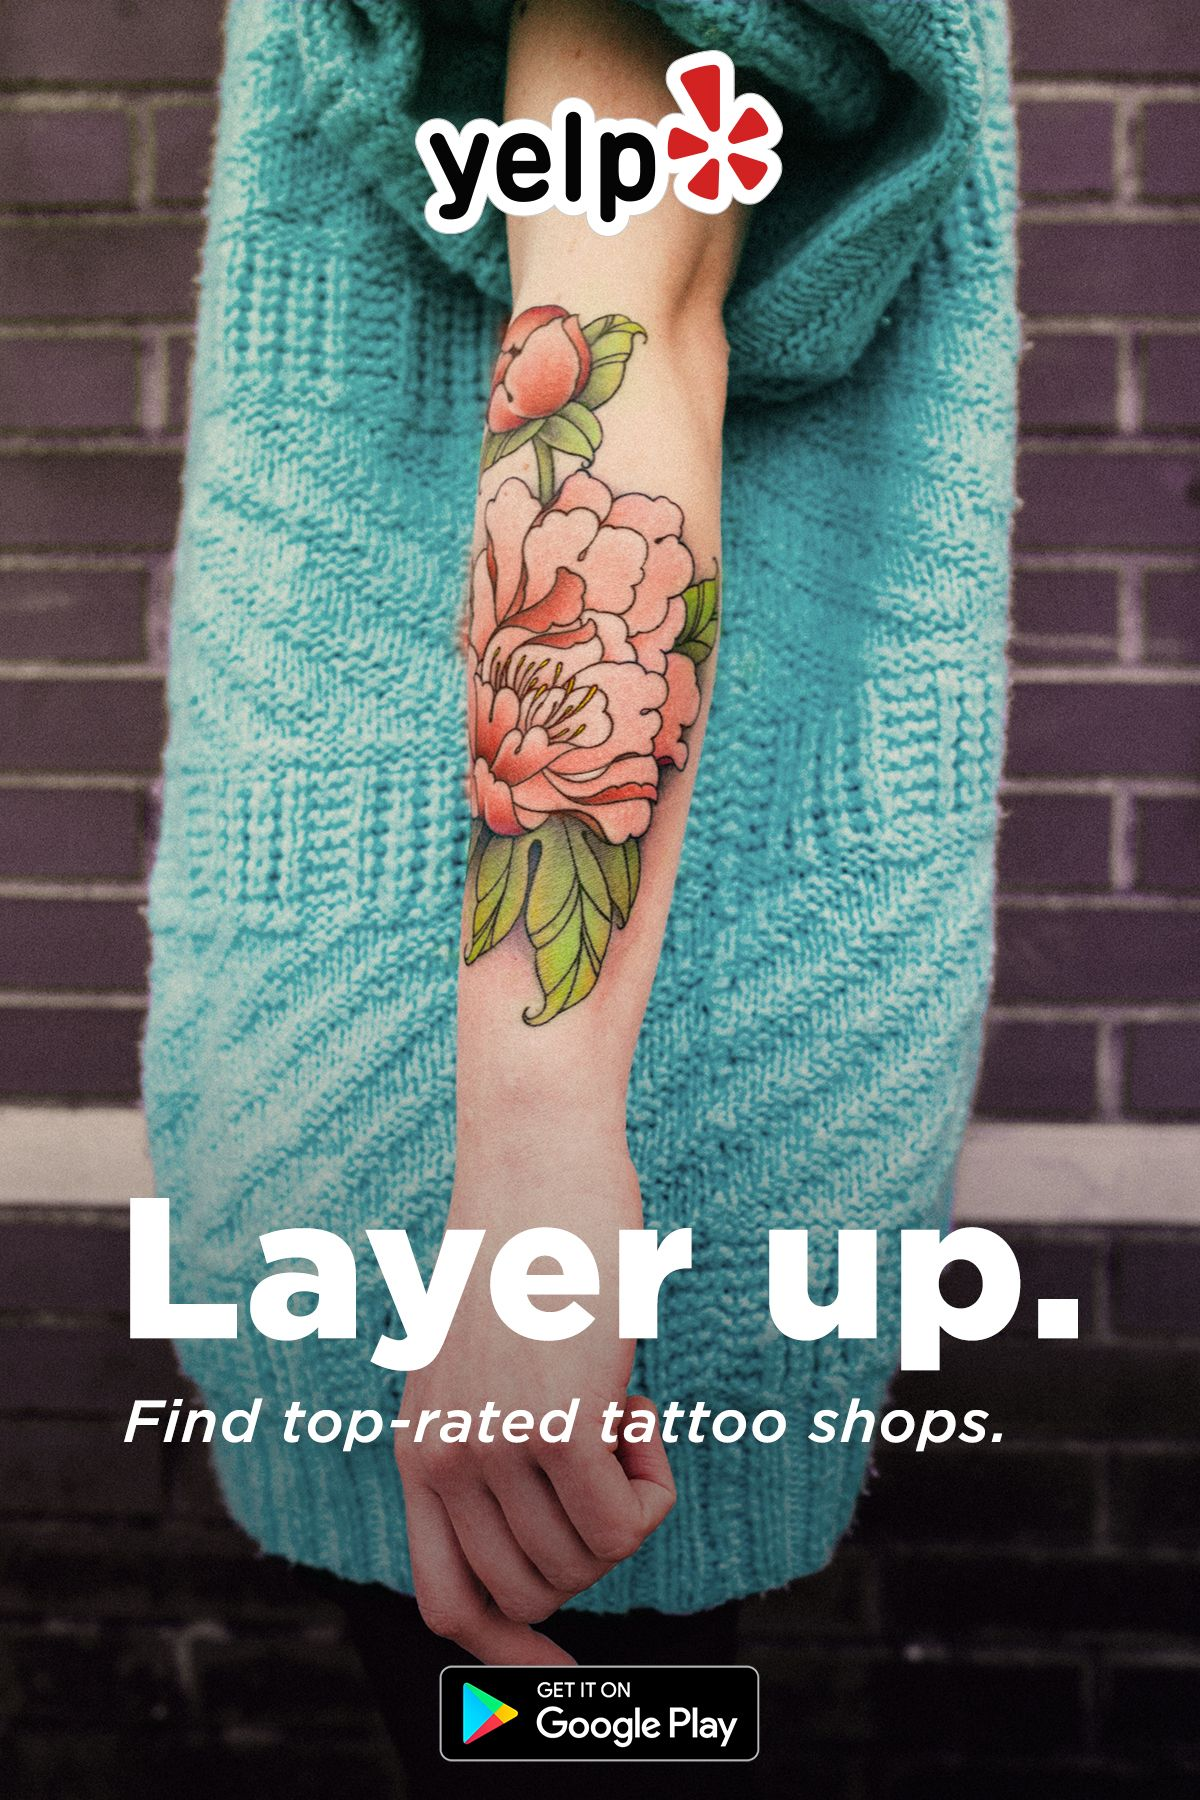 Need A Tattoo Or Looking For Some Inspo Download Yelp To Find